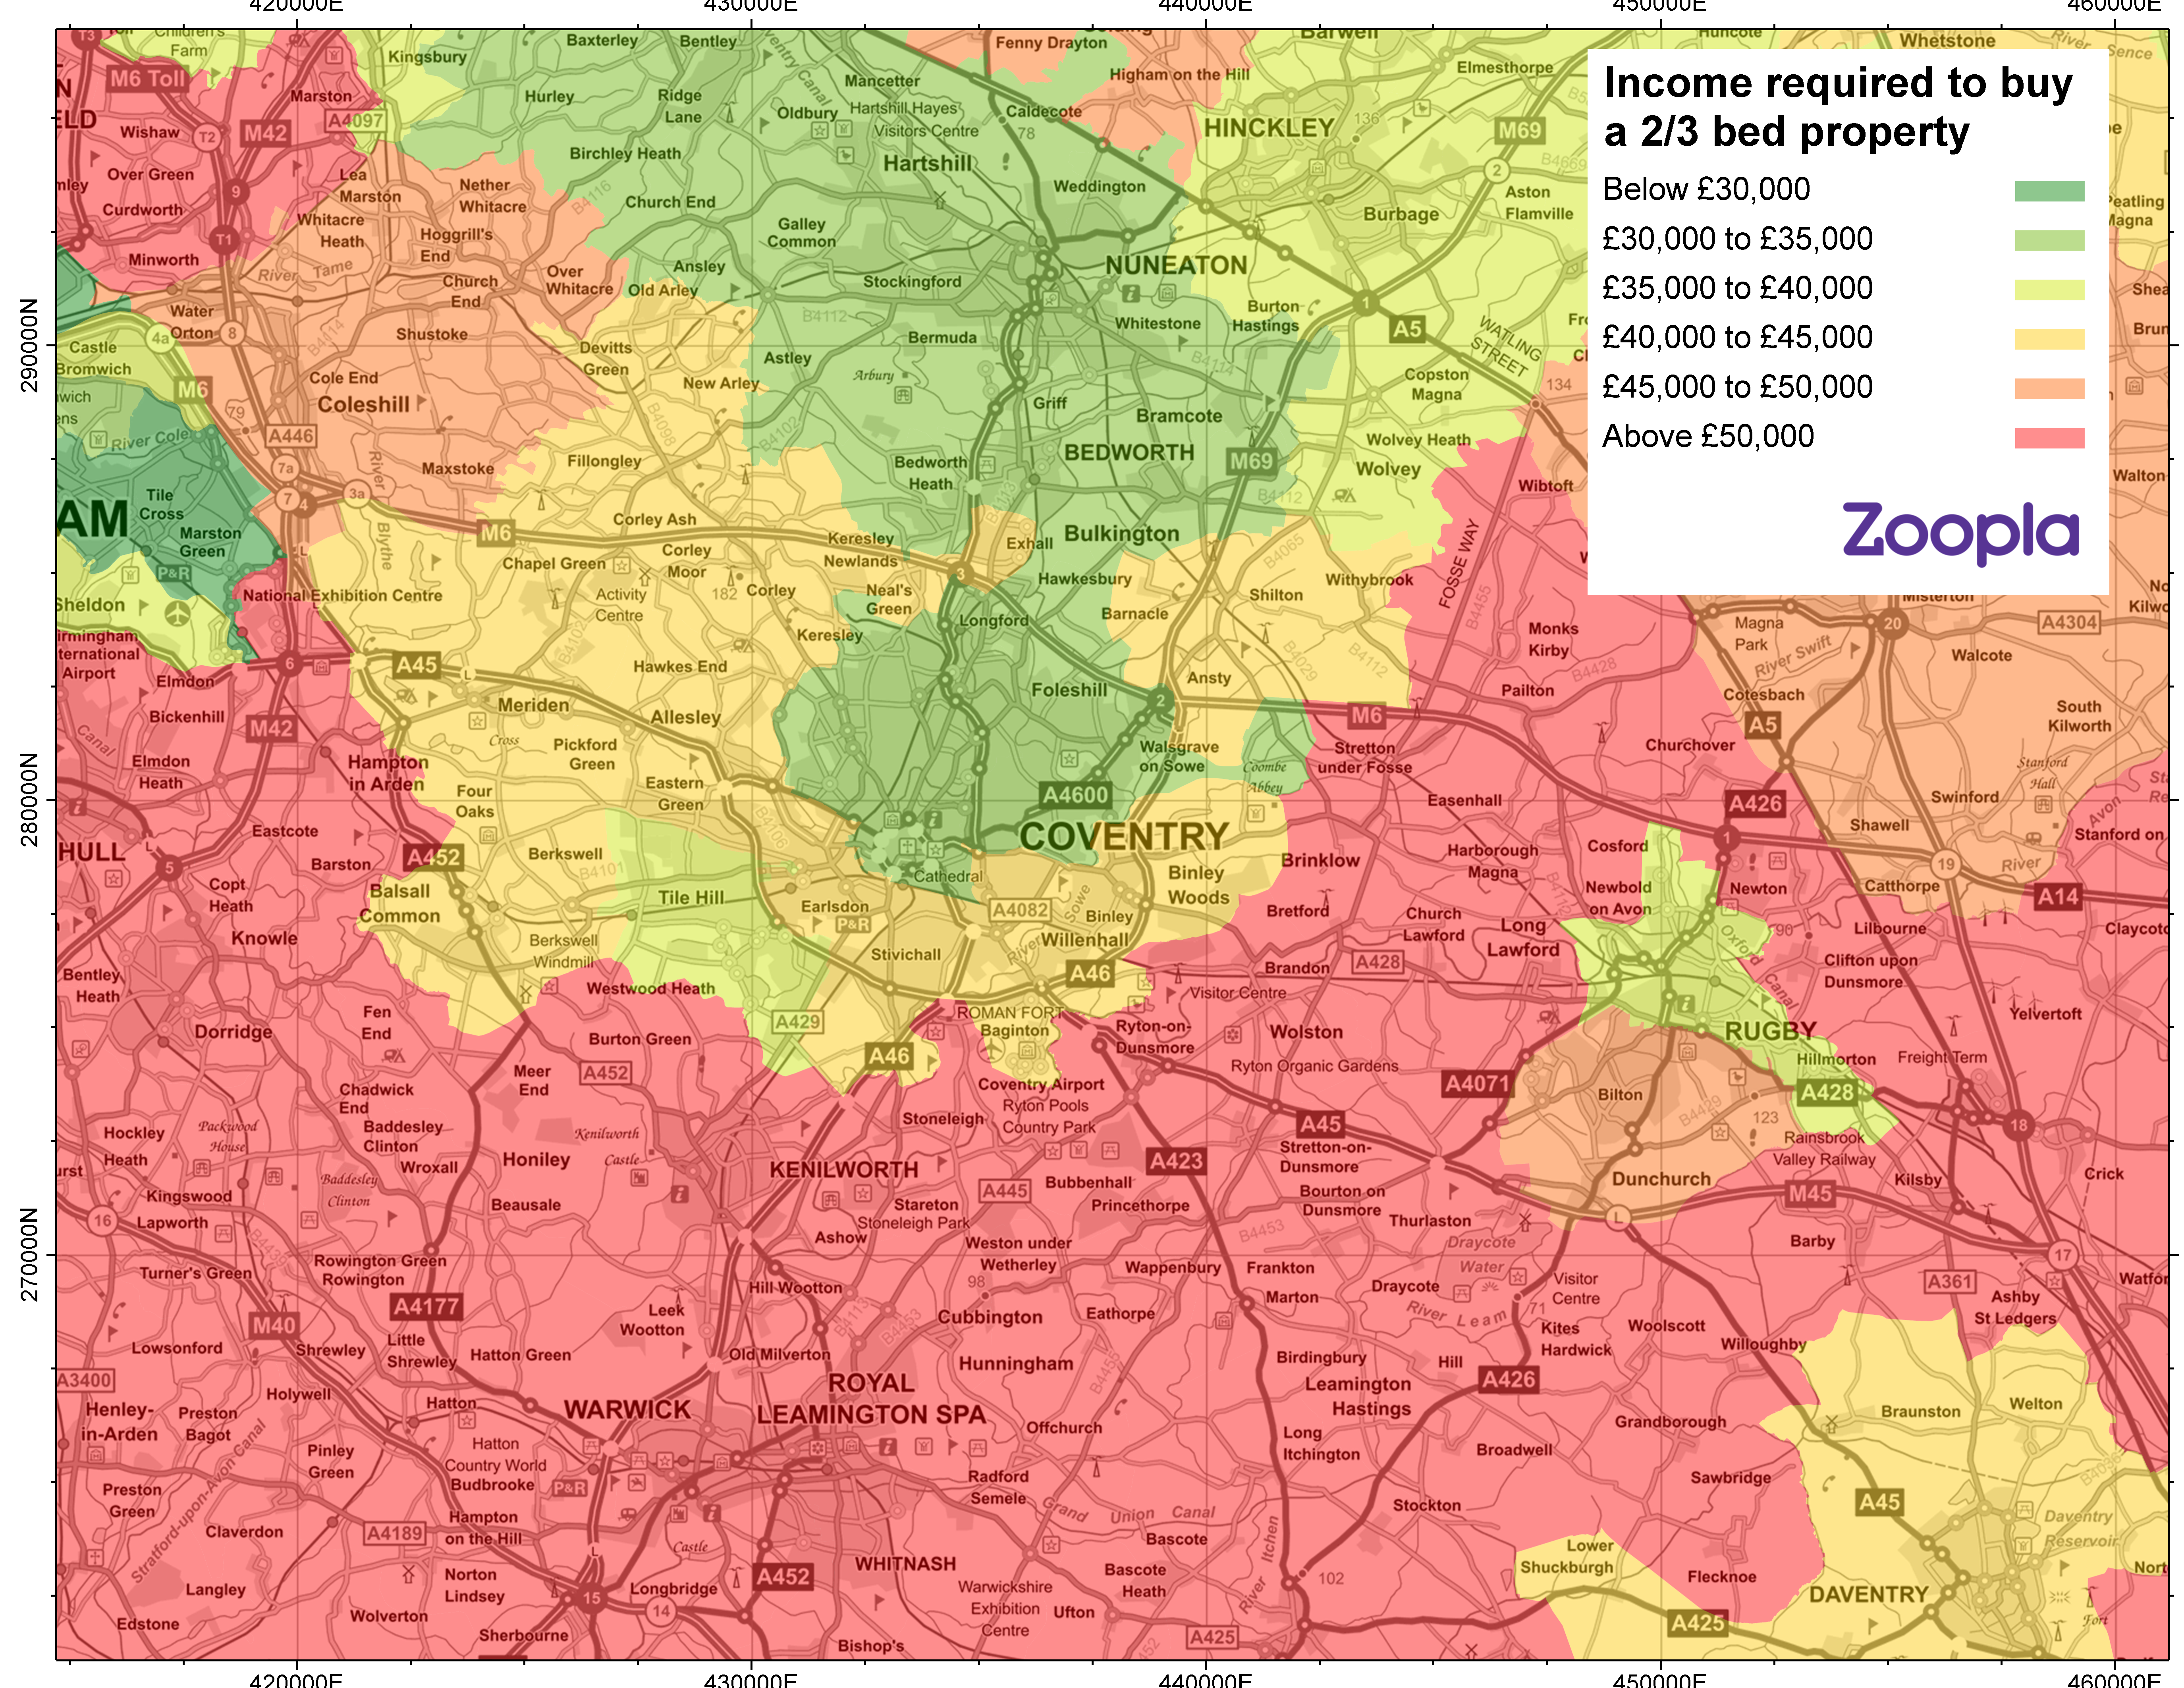 Map showing first-time buyer affordability in Coventry